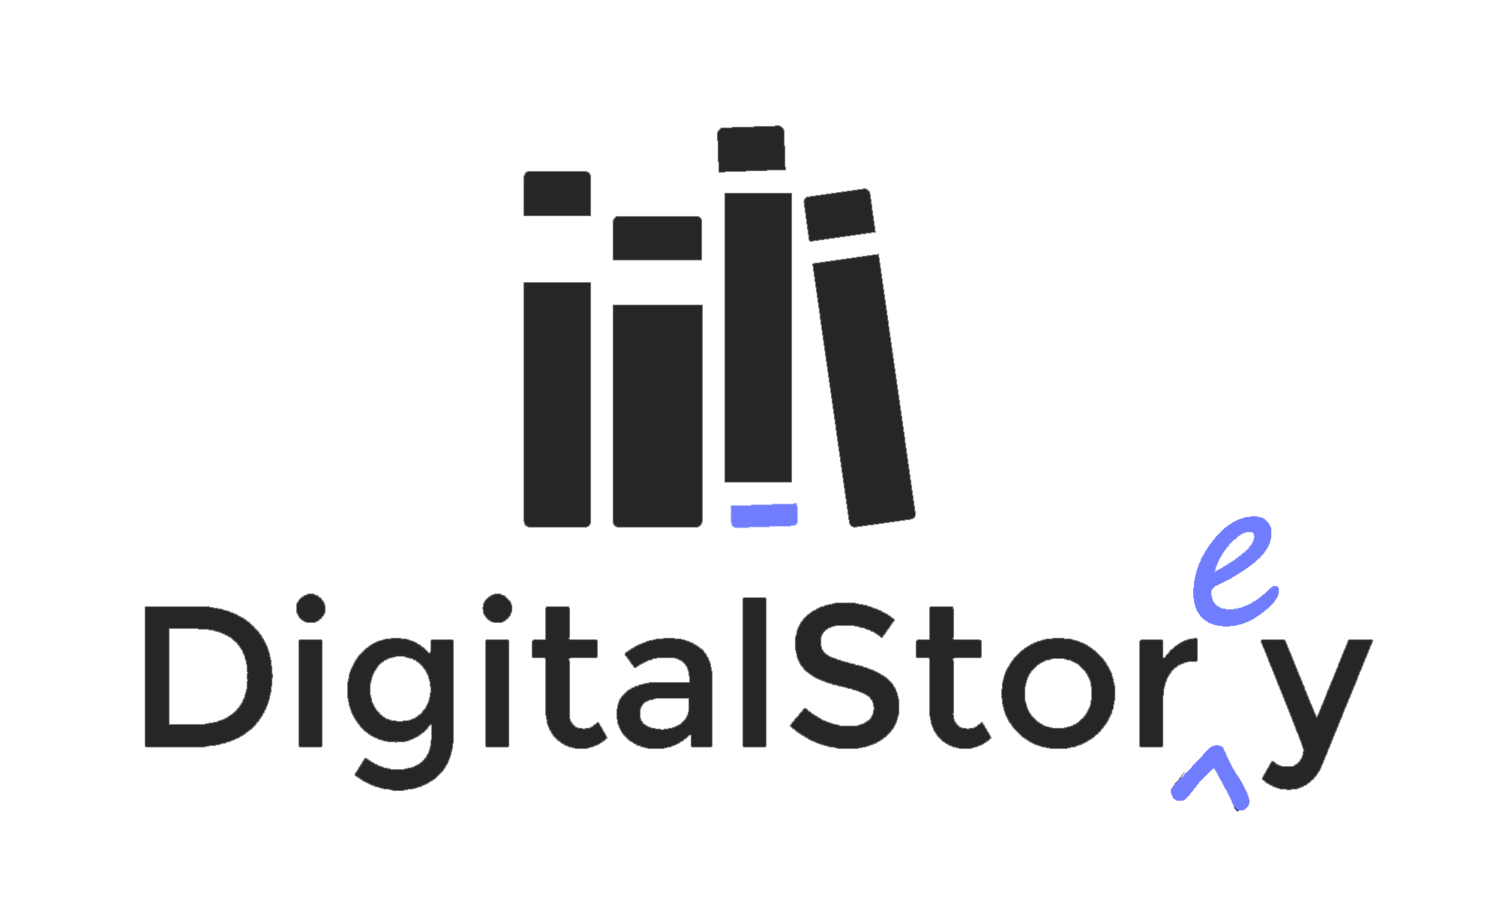 Digital Storey